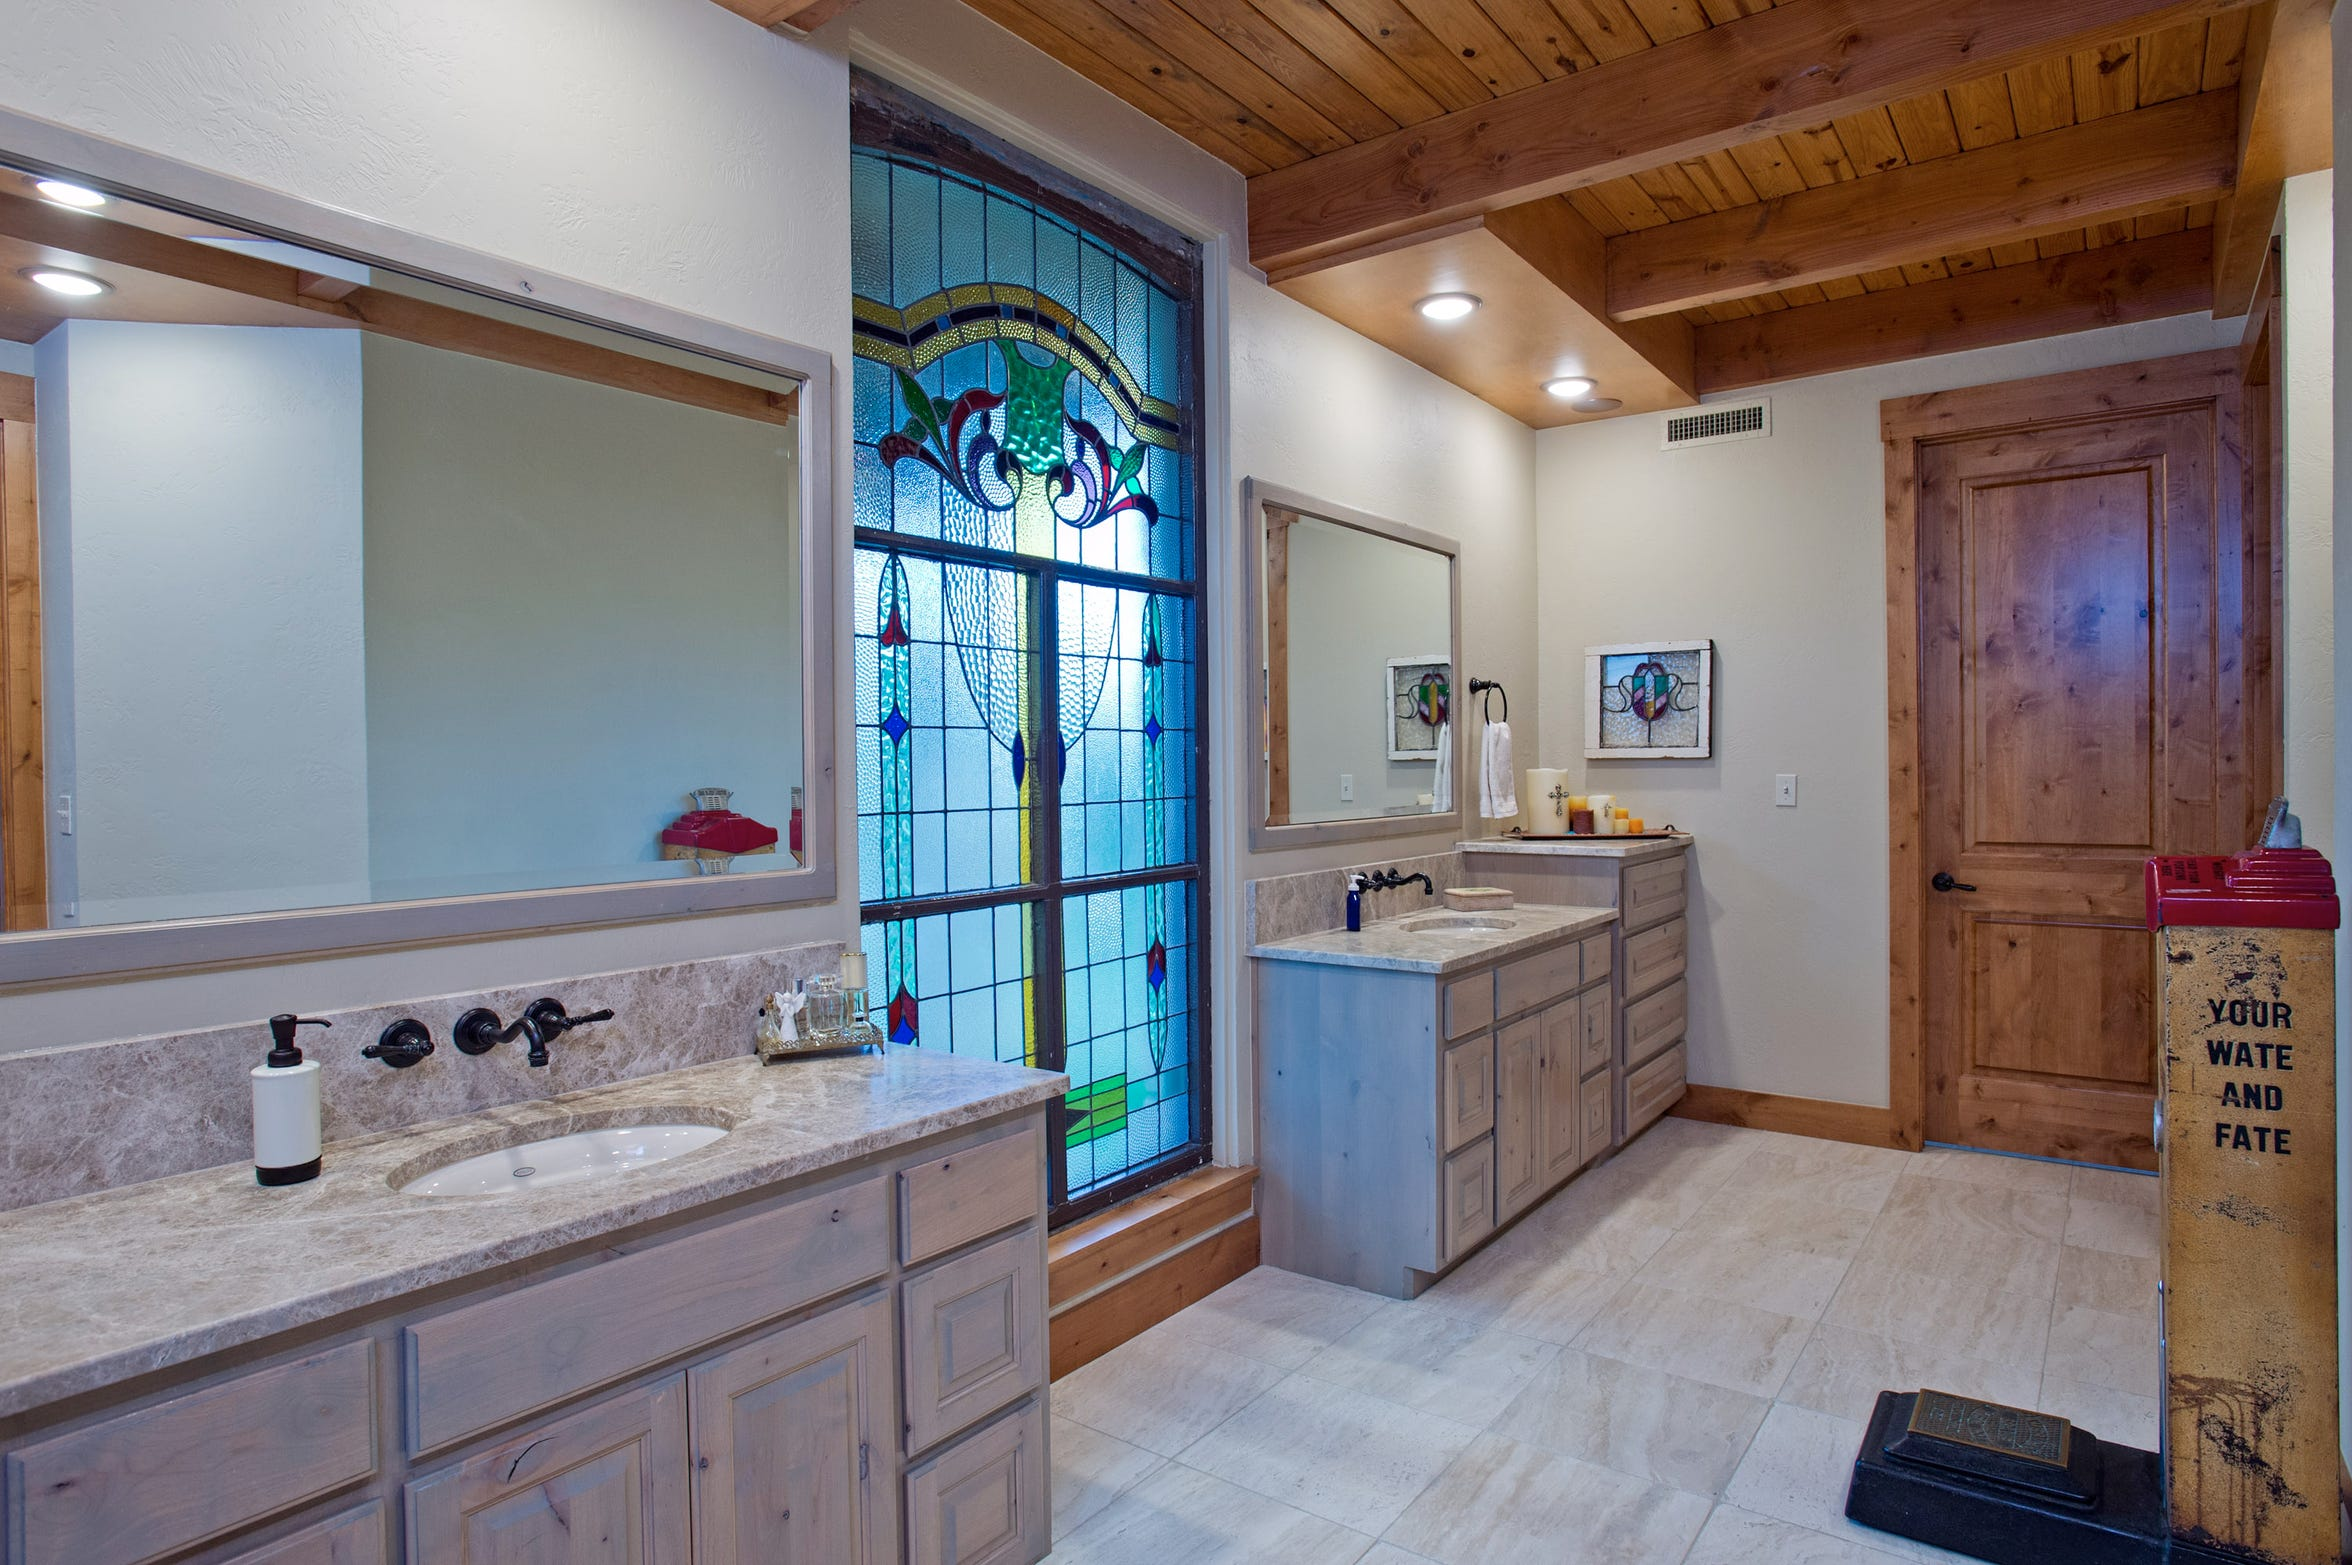 A large stained glass window lets the perfect light into the master bath area